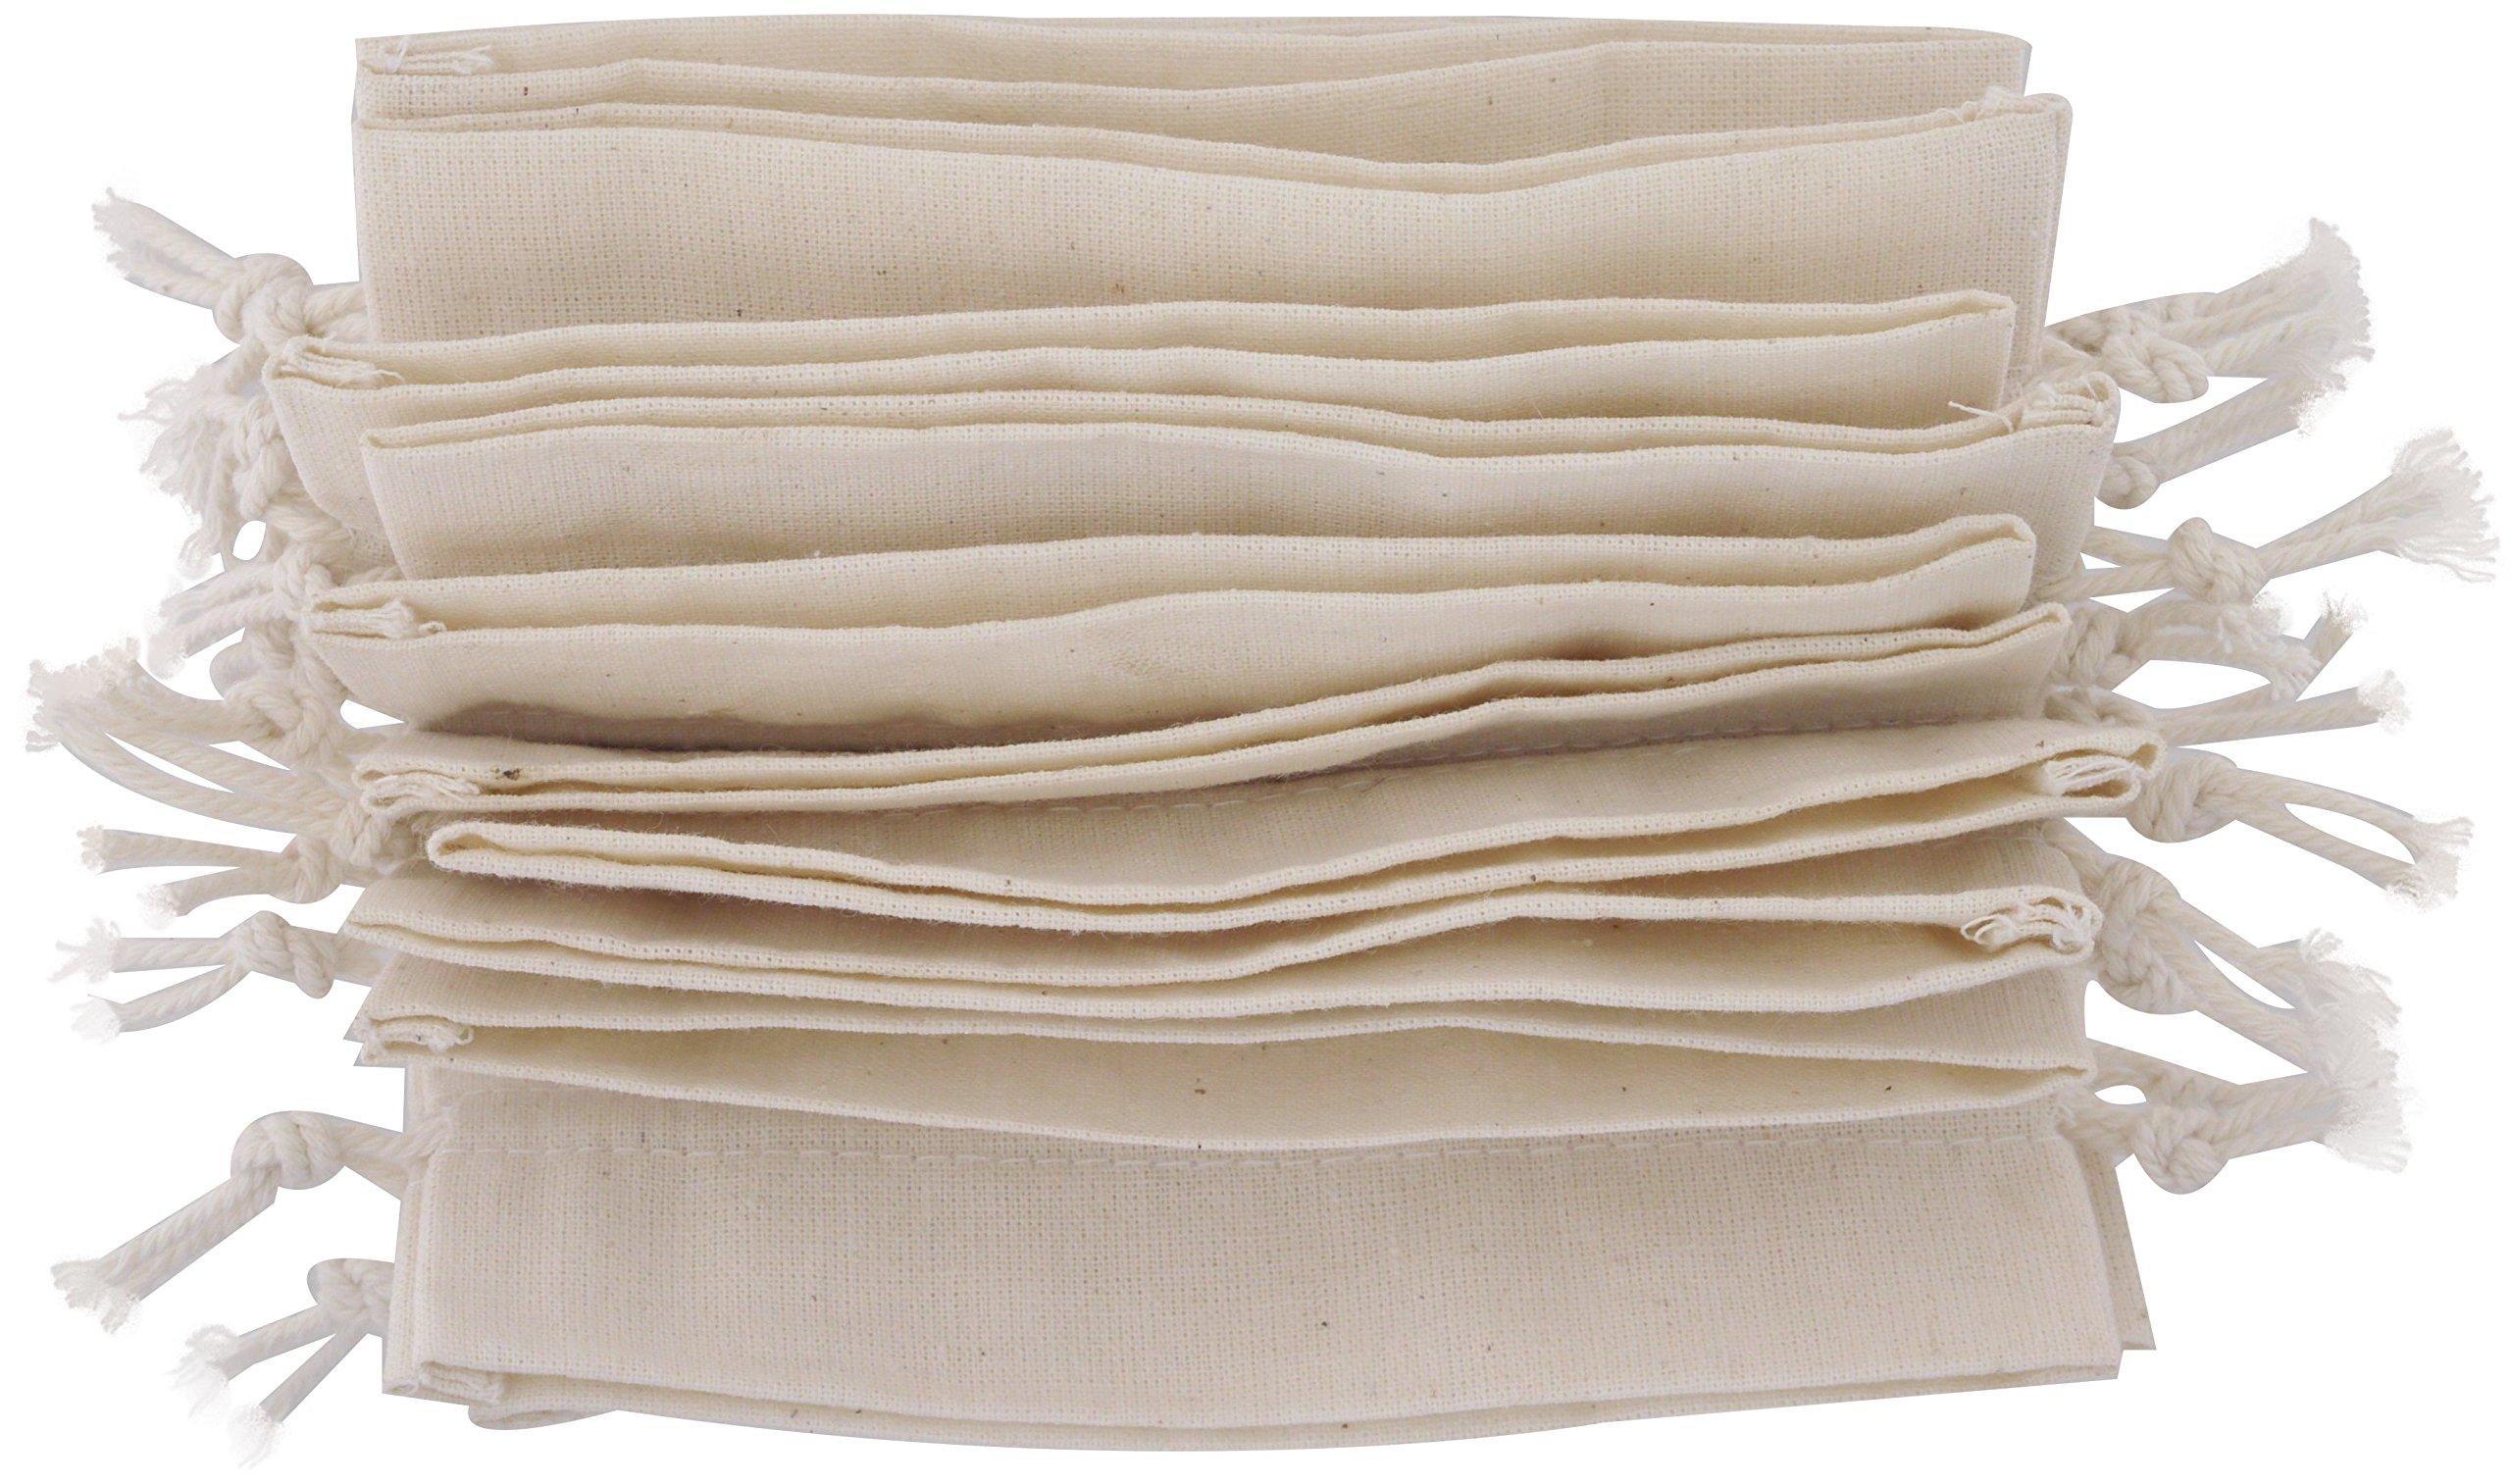 H3BBG-10103-S6 JUMPER-H1505TR//A3049S//H1505TR 3 Pack of 100